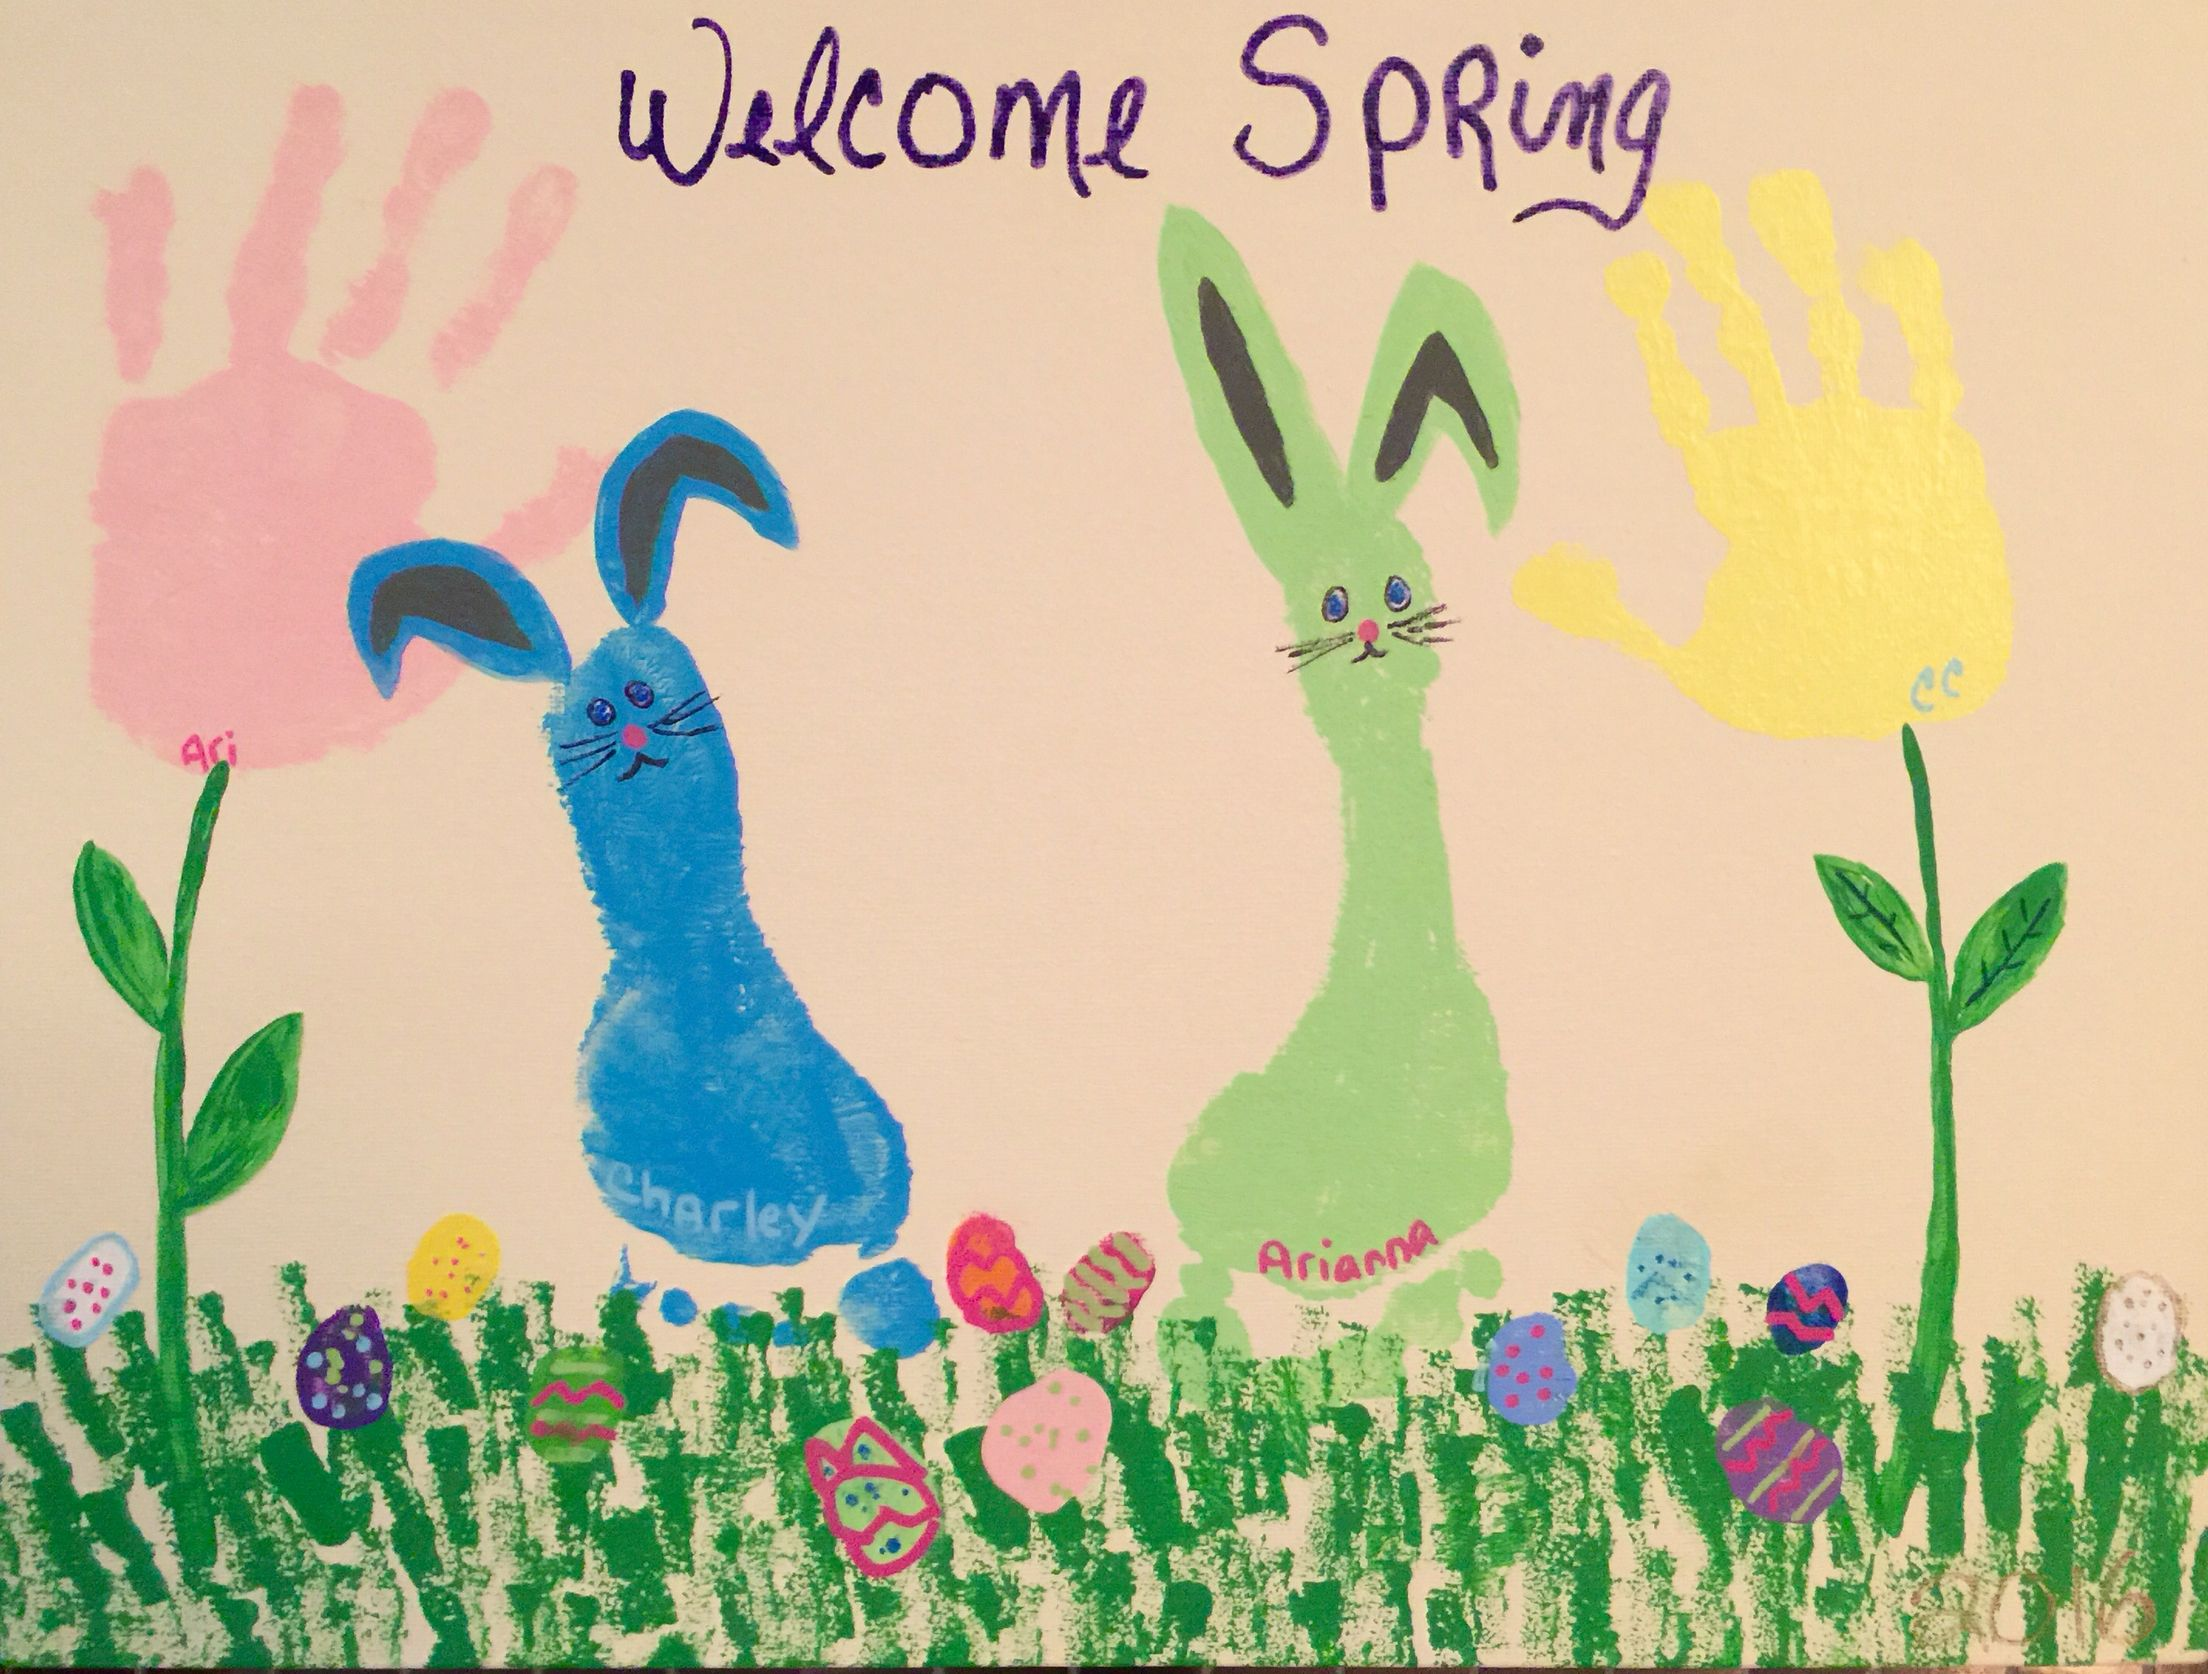 Footprint bunnies, handprint flowers and thumbprint eggs. I did this with my littles. So much fun!